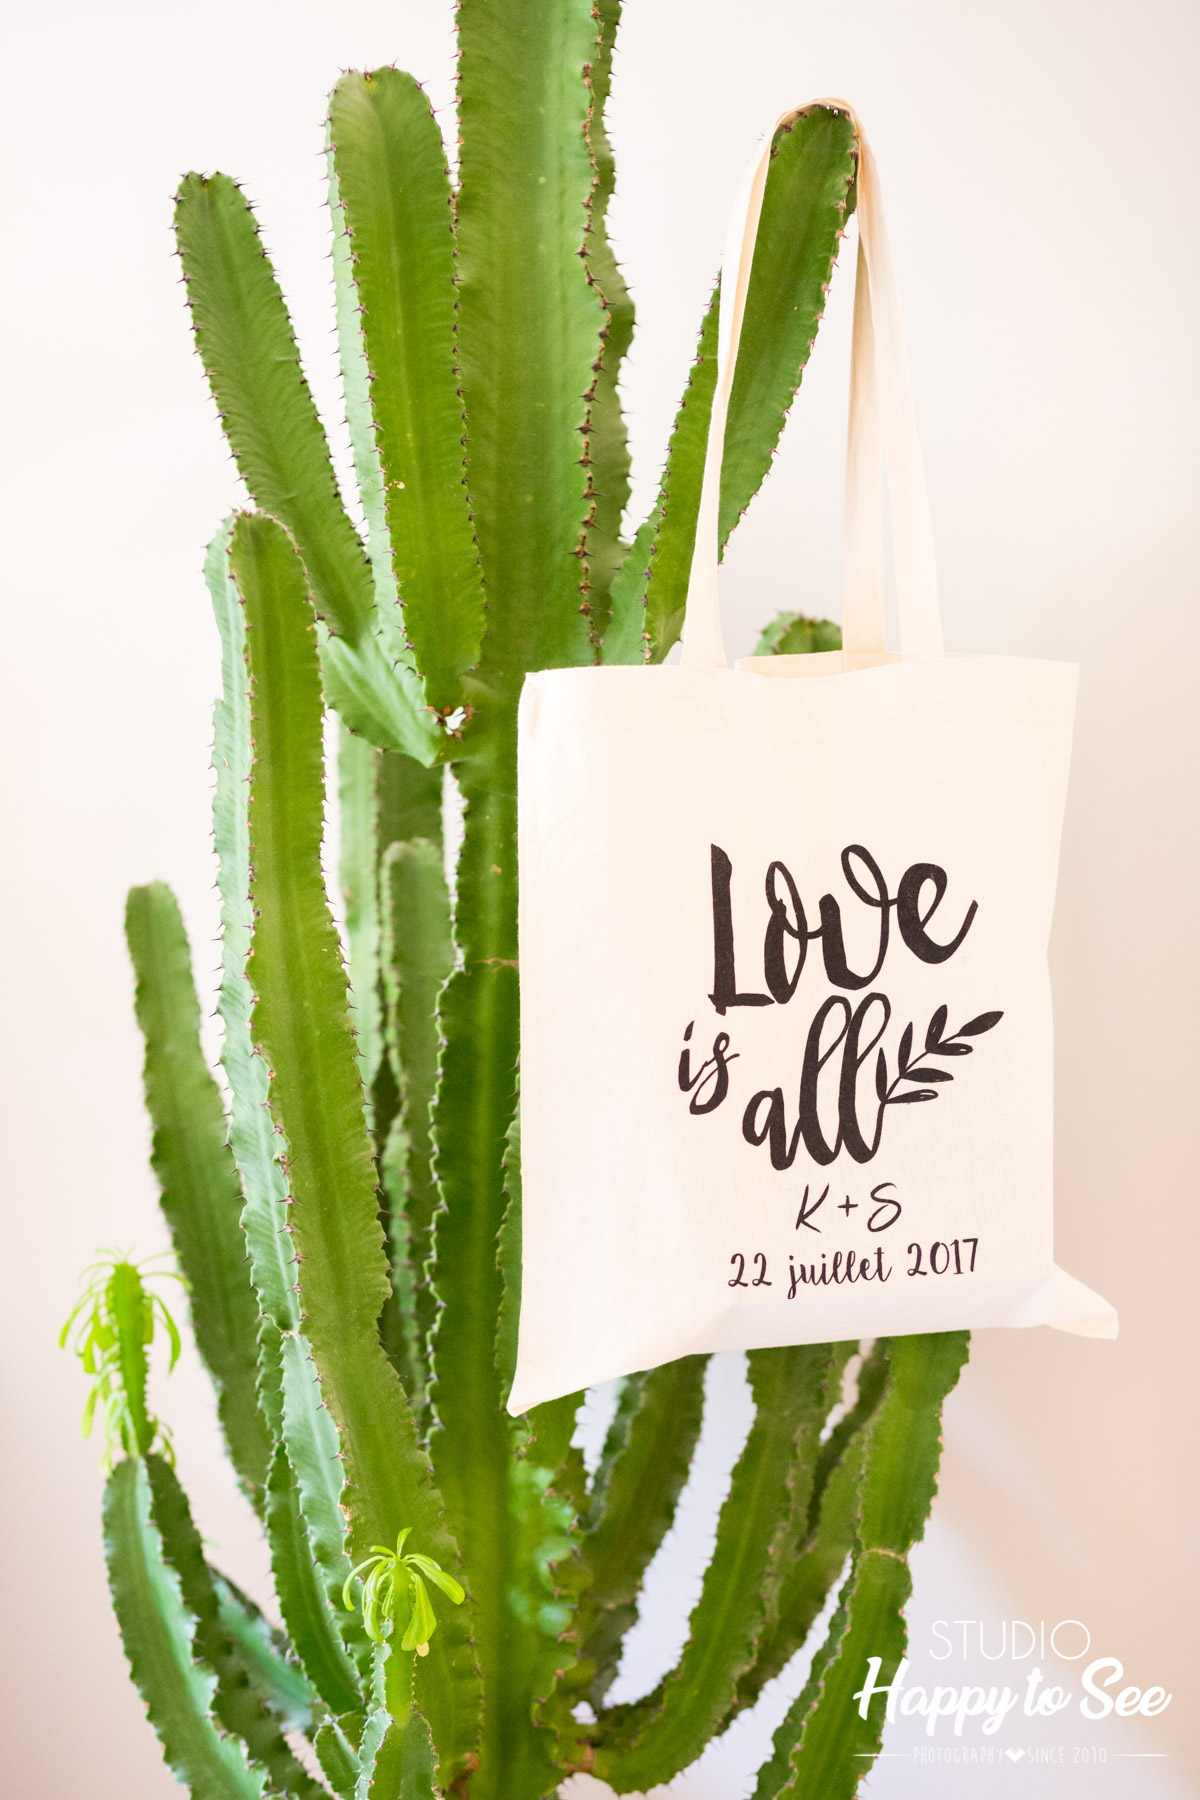 Mariage decoration cactus tote bag Love is all